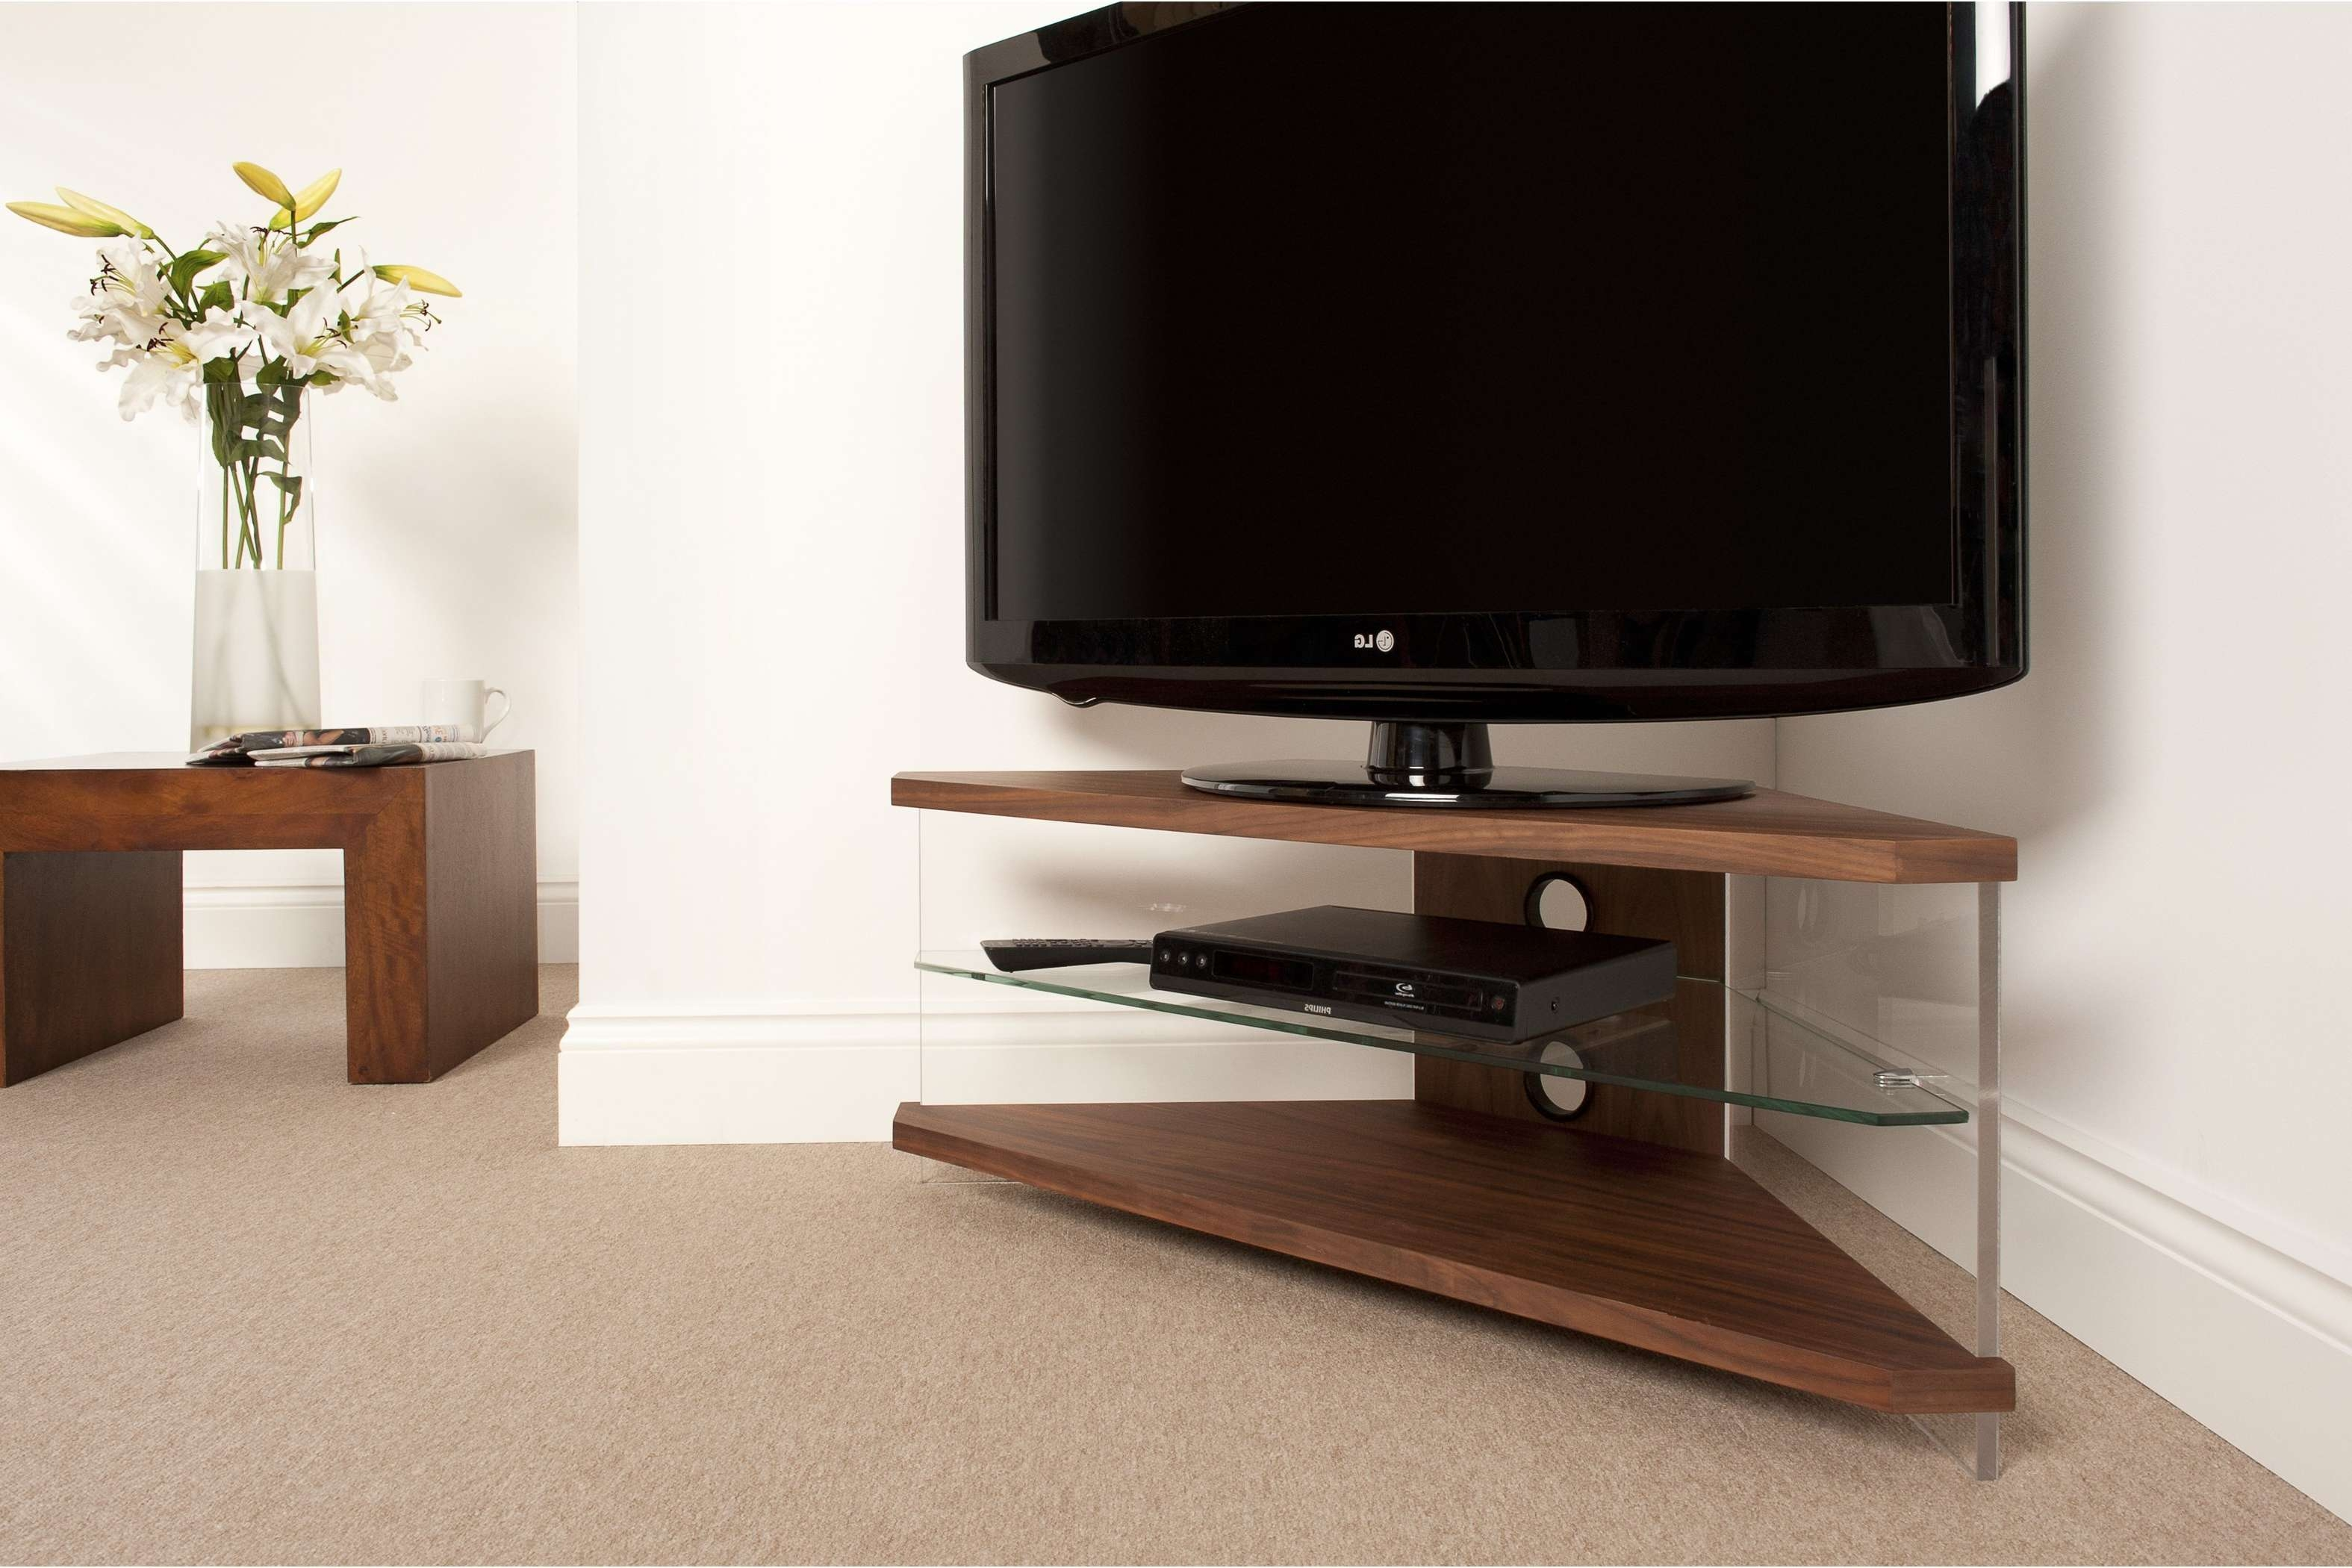 Console Tables : Whalen Tv Stand Flat Screen Walmart Console Mount Intended For Flat Screen Tv Stands Corner Units (View 15 of 20)